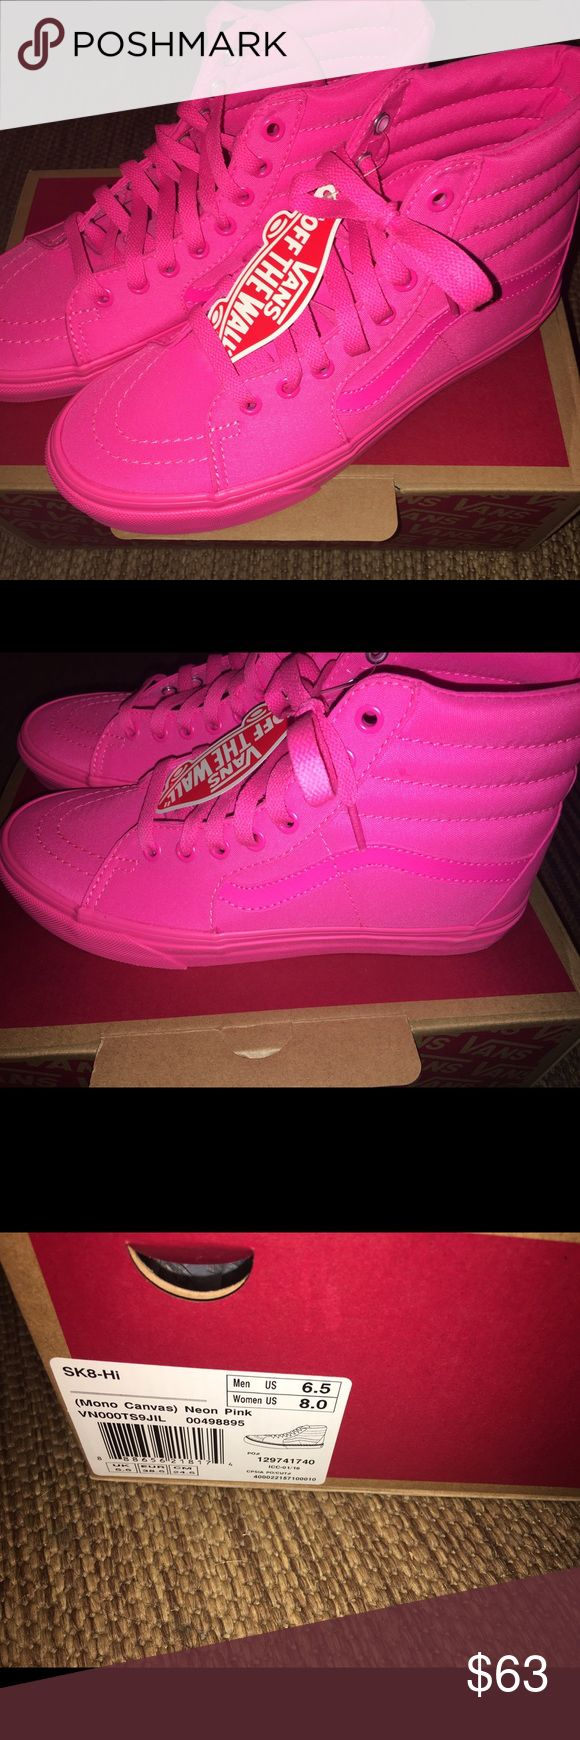 NWT neon pink vans New in box neon all pink high top vans! Men's size 6.5 and women's size 8! ***>price is firm unless bundled*** NO trades Vans Shoes Sneakers